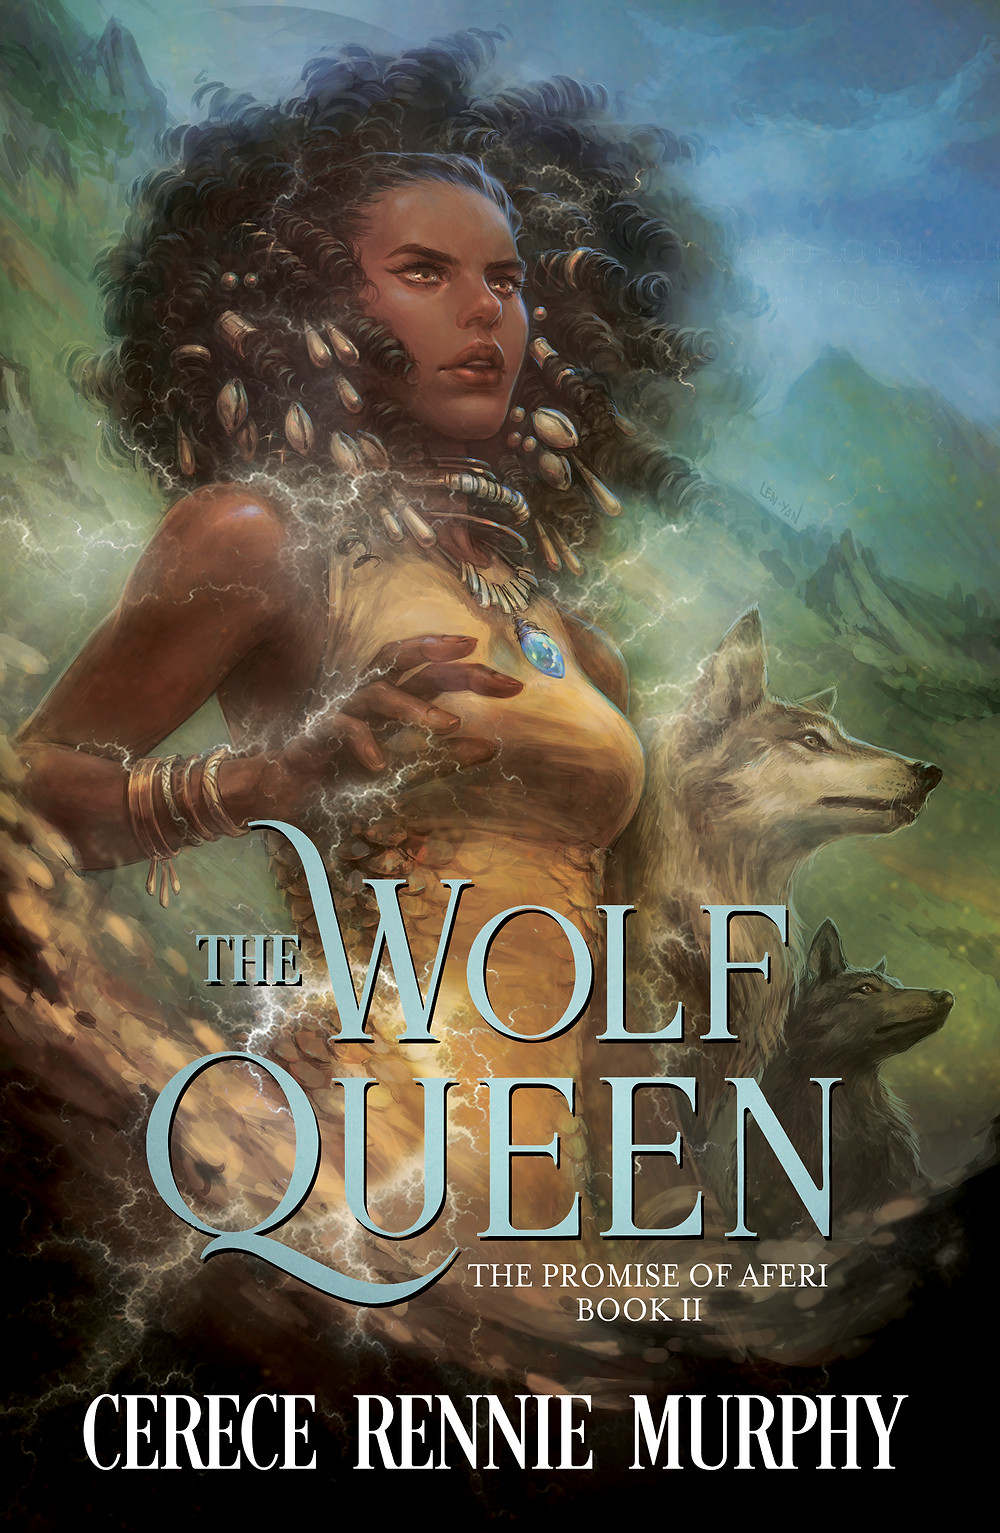 The Wolf Queen: The Promise of Aferi (Book II)